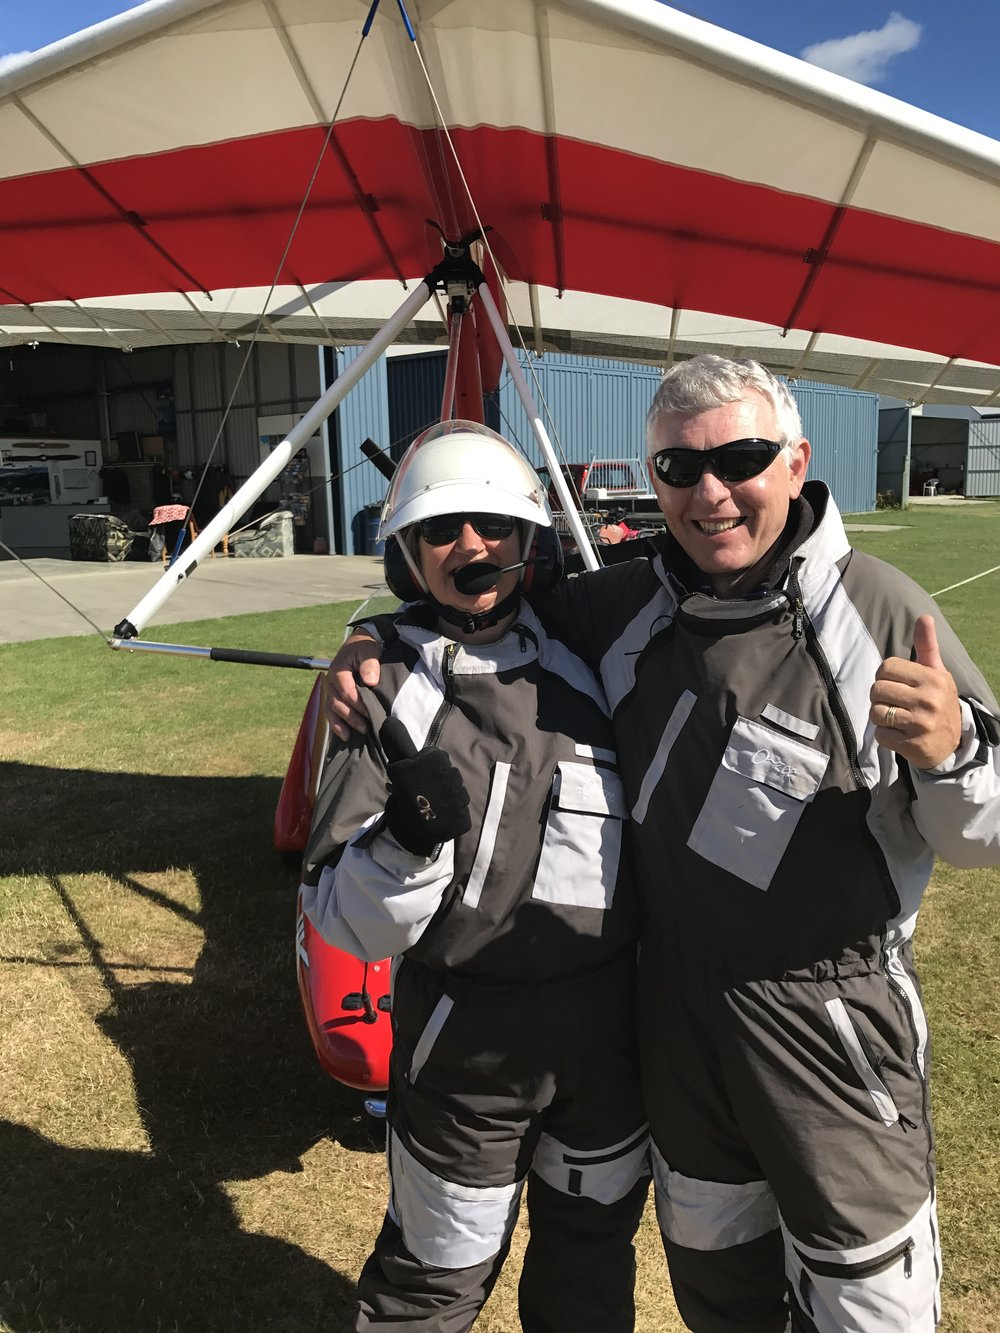 Microlight flight in New Zealand